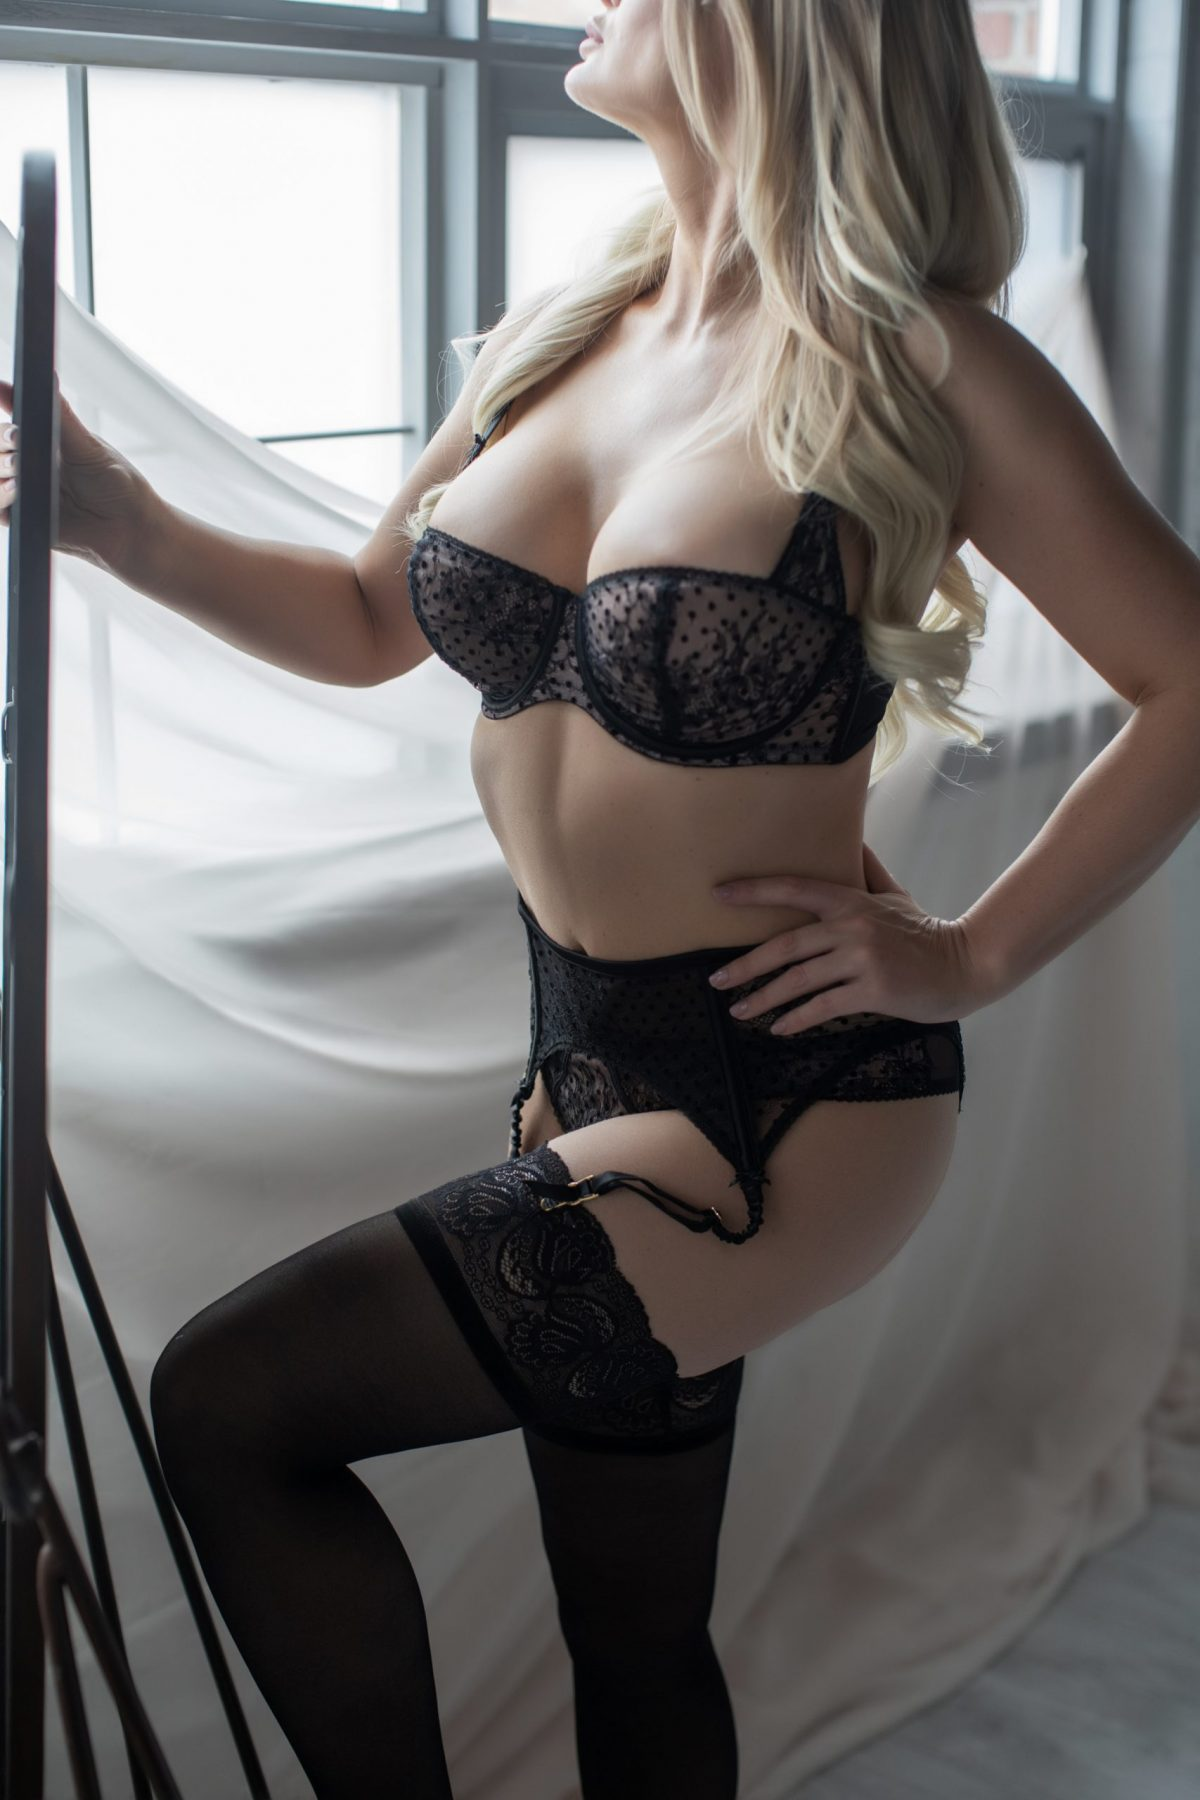 Toronto escorts companion upscale Tatiana Interests Duo Non-smoking Age Mature Figure Slender Tall Breasts Enhanced Hair Blonde Ethnicity European Tattoos Small Arrival Video New Photos